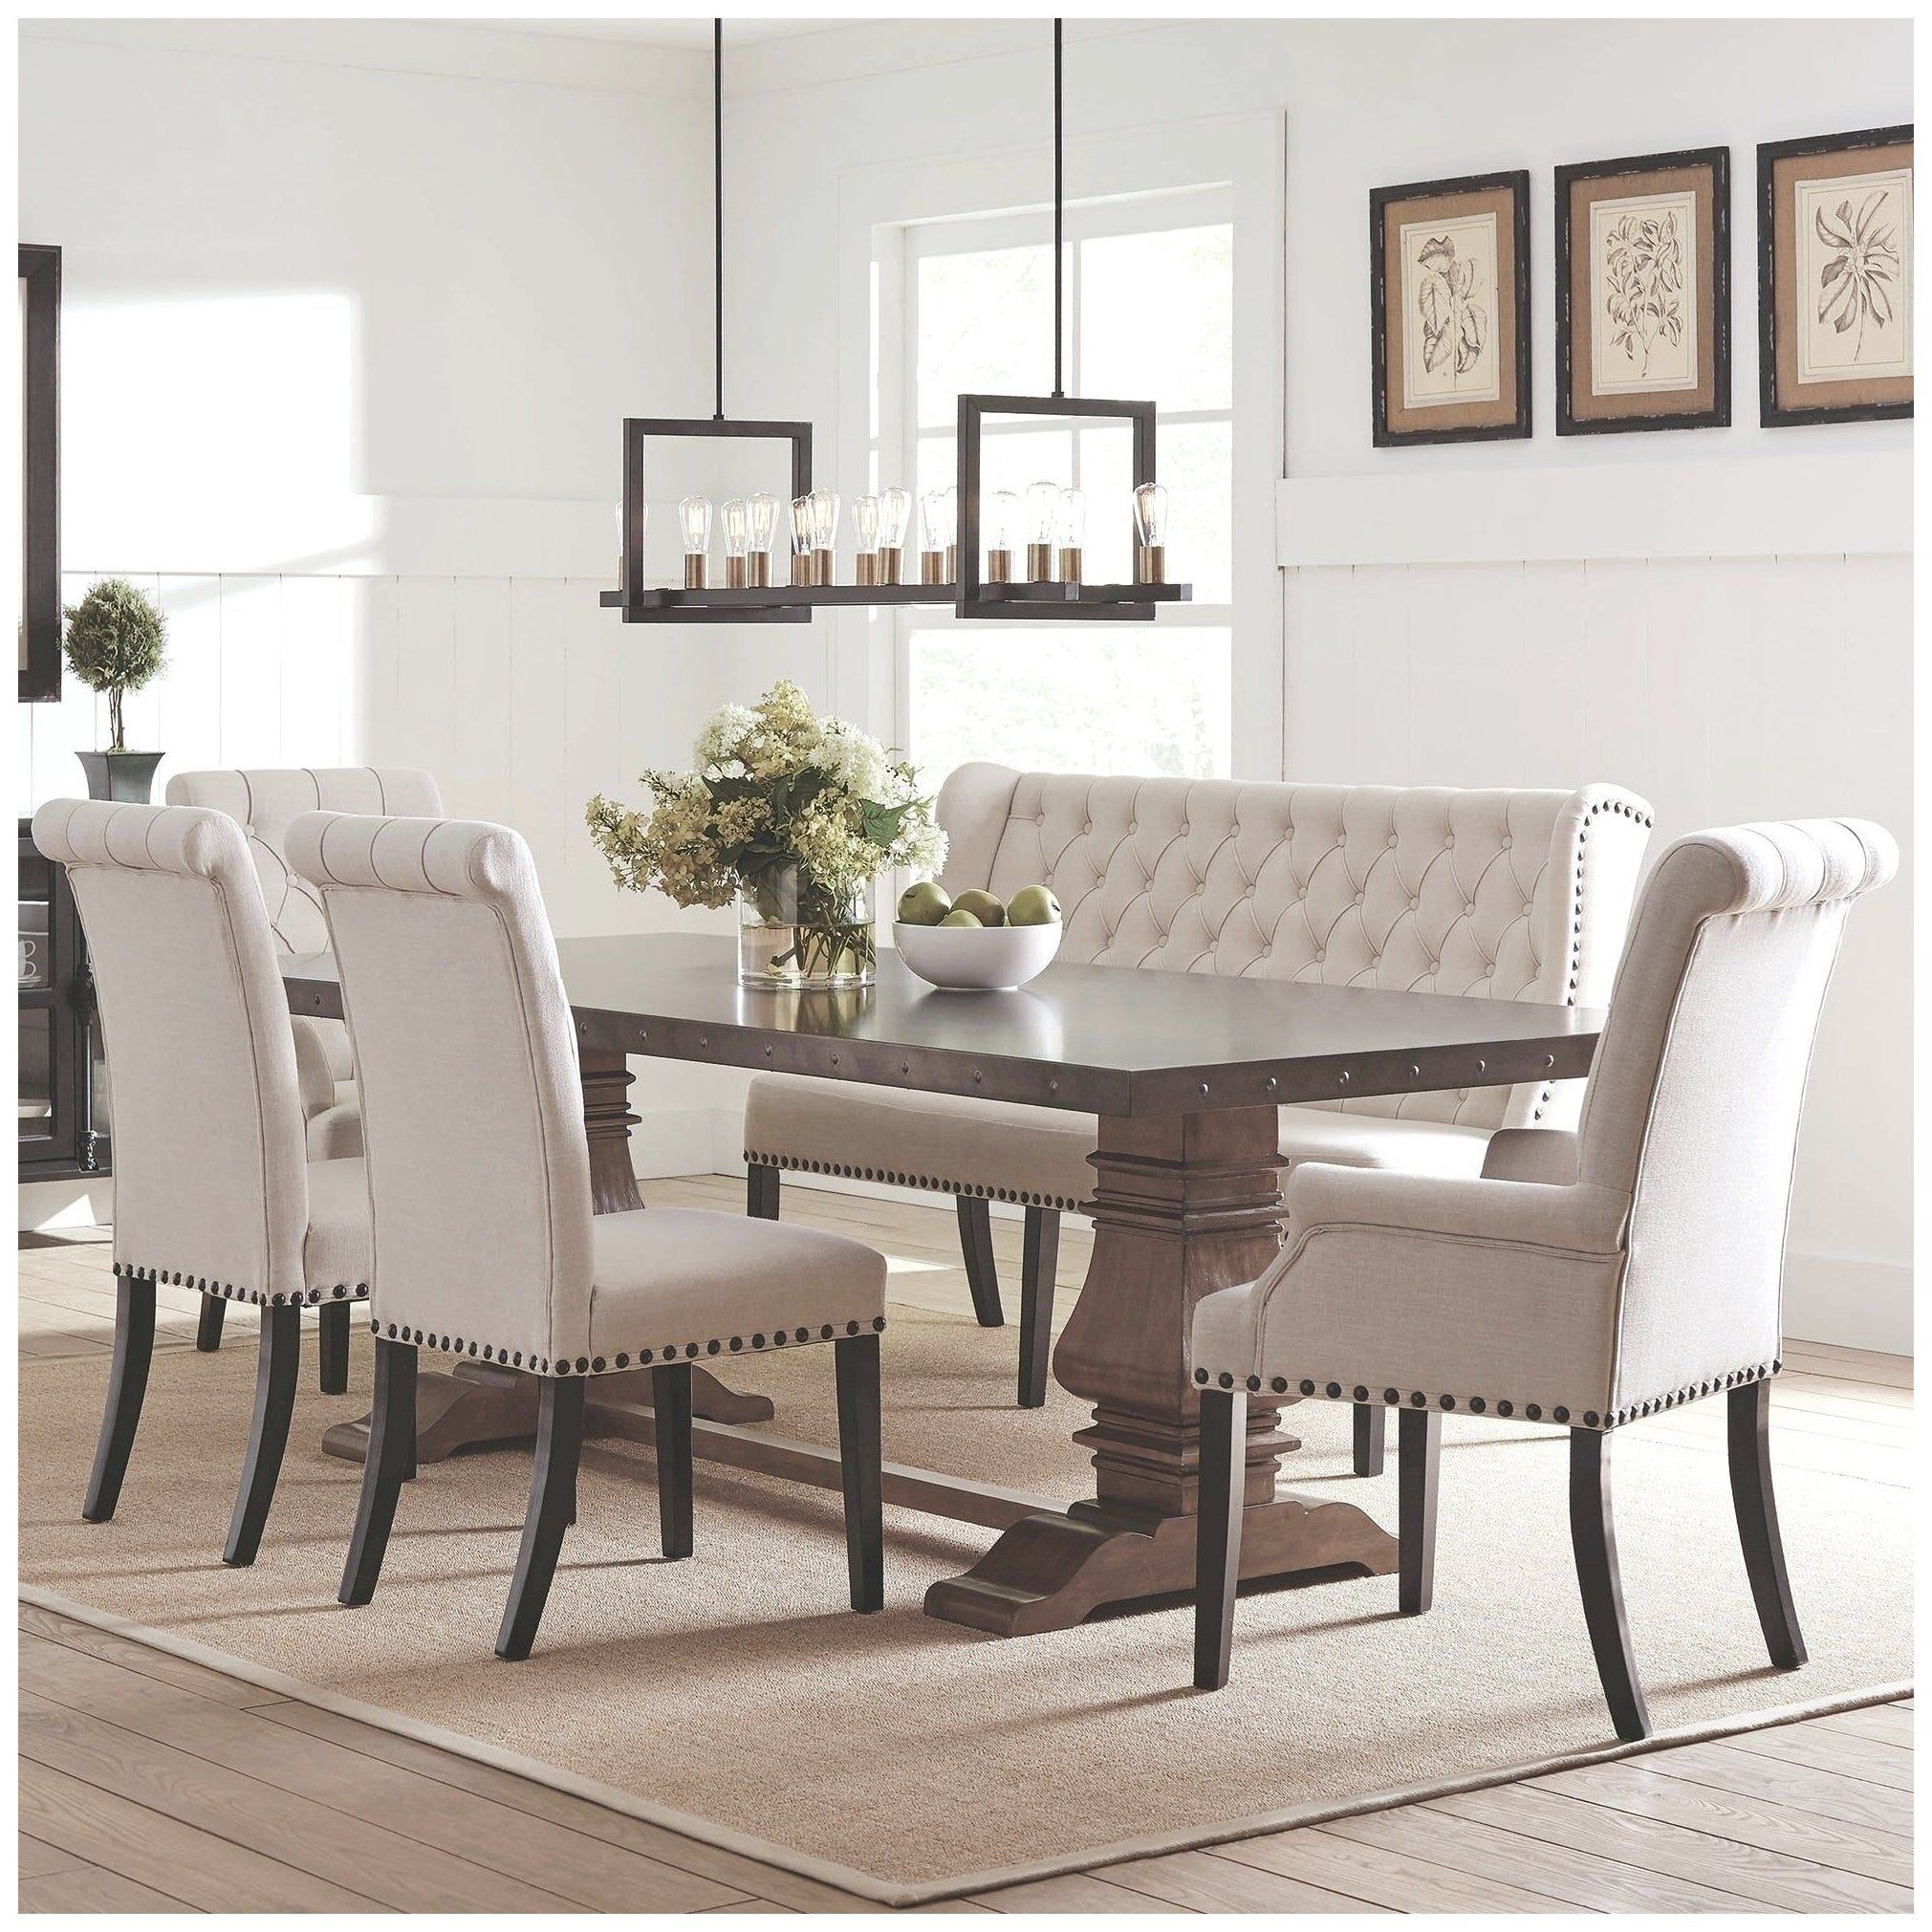 Our Best Dining Room Bar Furniture Deals Dining Set With Bench And Chairs Di In 2021 Dining Table With Bench Black Dining Room Furniture Dining Set With Bench